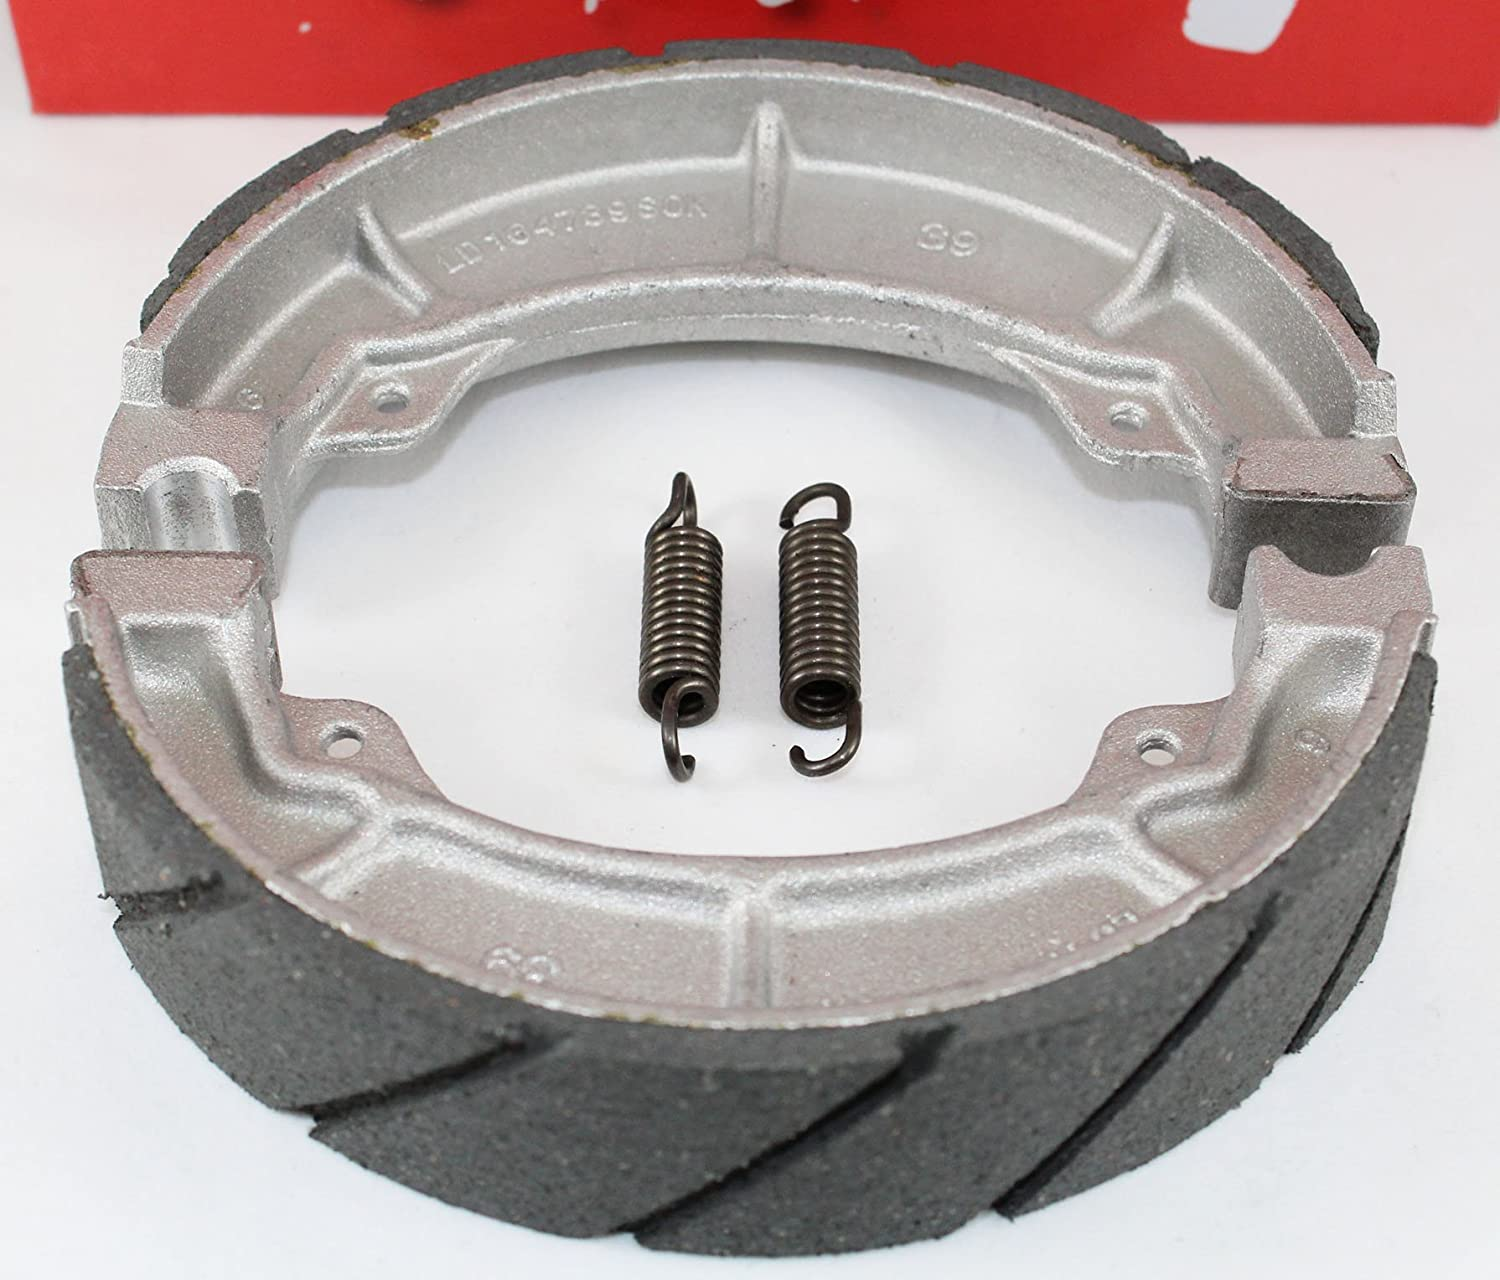 WATER GROOVED FRONT BRAKE SHOES /& SPRINGS for the 85-87 Honda ATC 250 ES Big Red 250SX